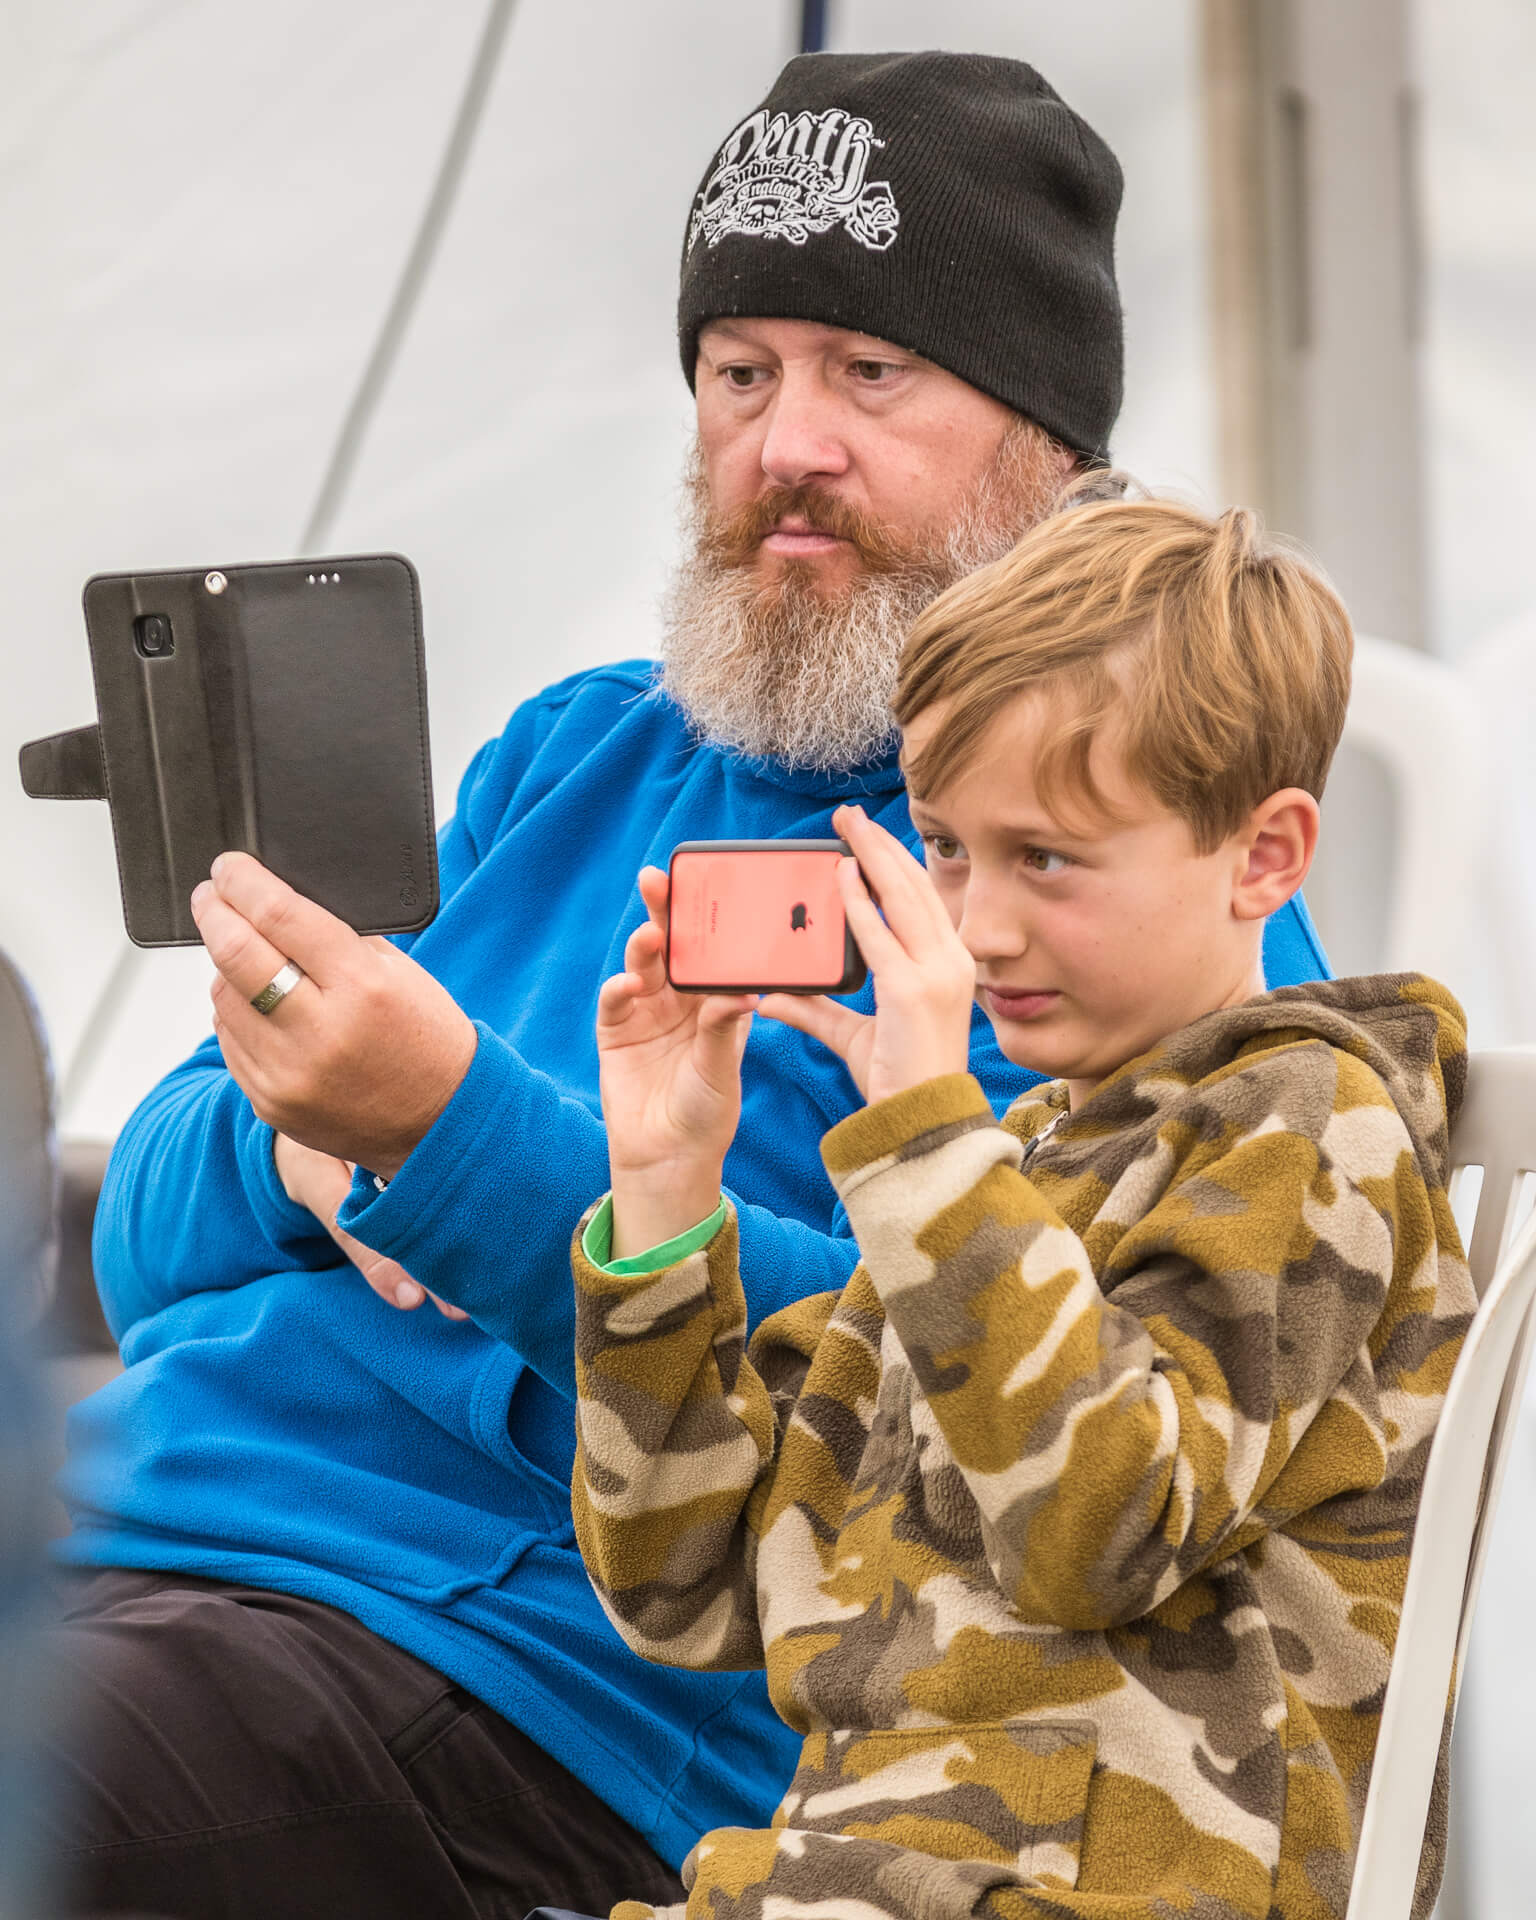 Seen in colour this waist up image of (what appears to be) a Father and his young Son as they sit side by side, both staring their phones at the same time. Taken at the Dubs of Anarchy Festival in 2019.